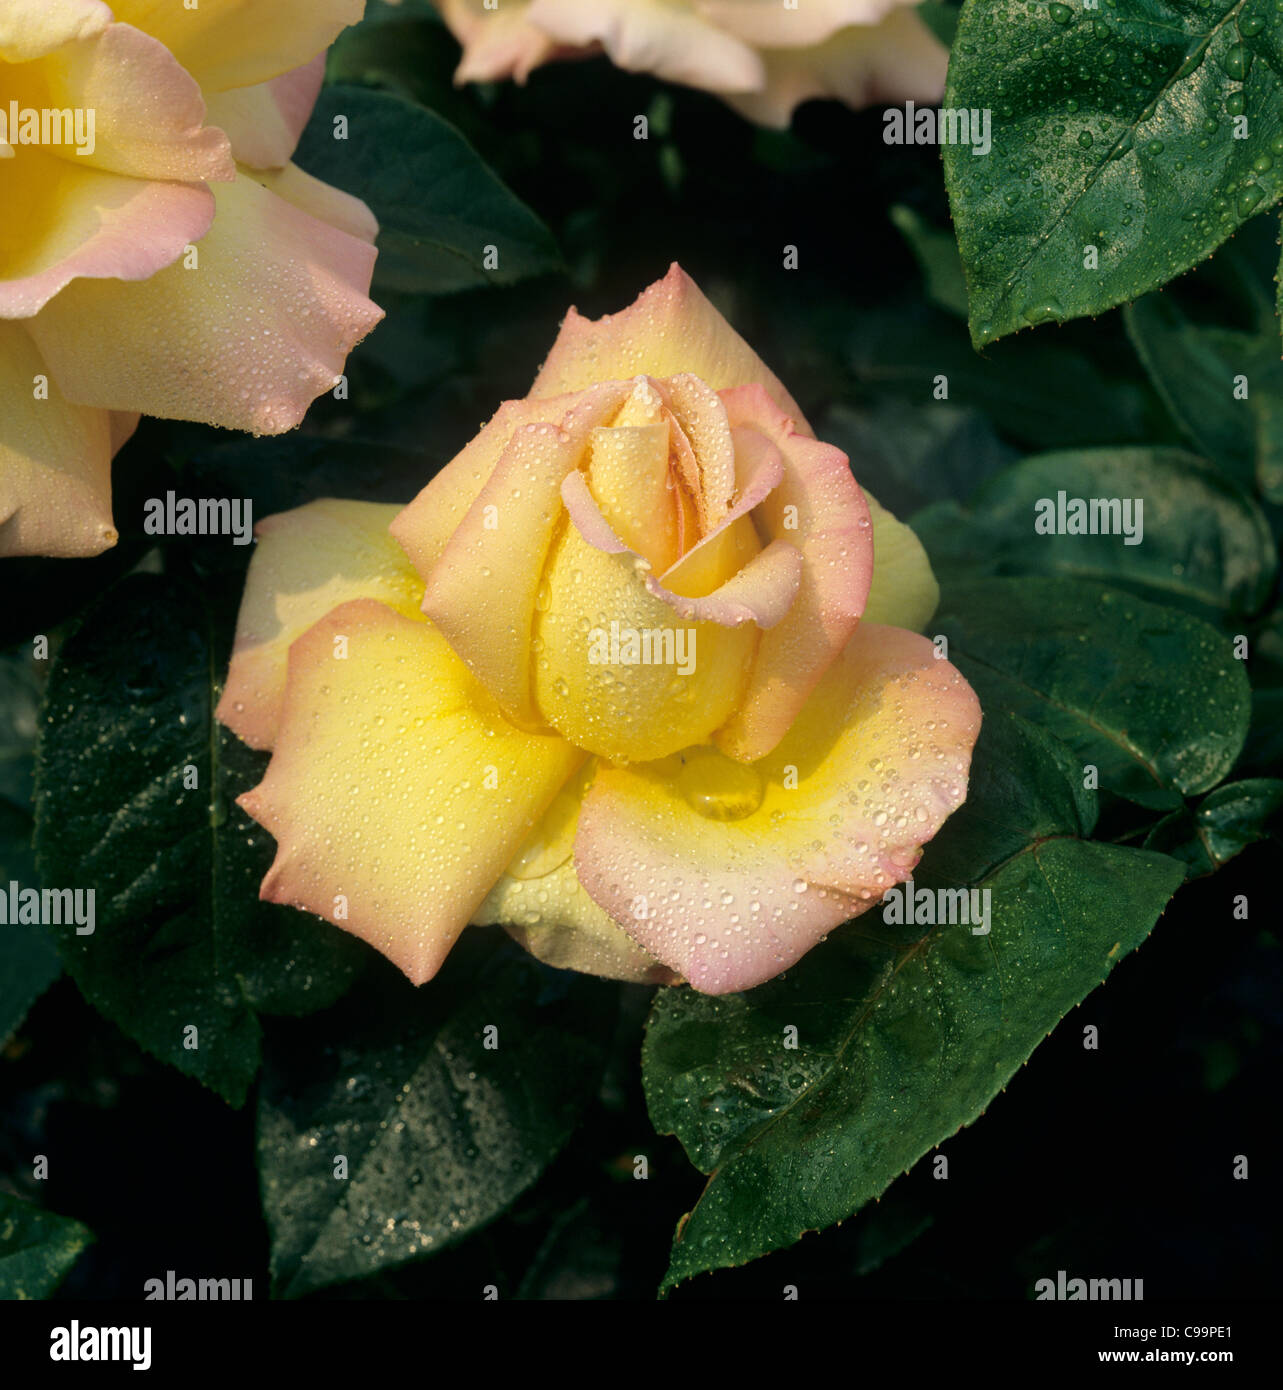 Perfect rose flower 'Peace' with moisture droplets - Stock Image